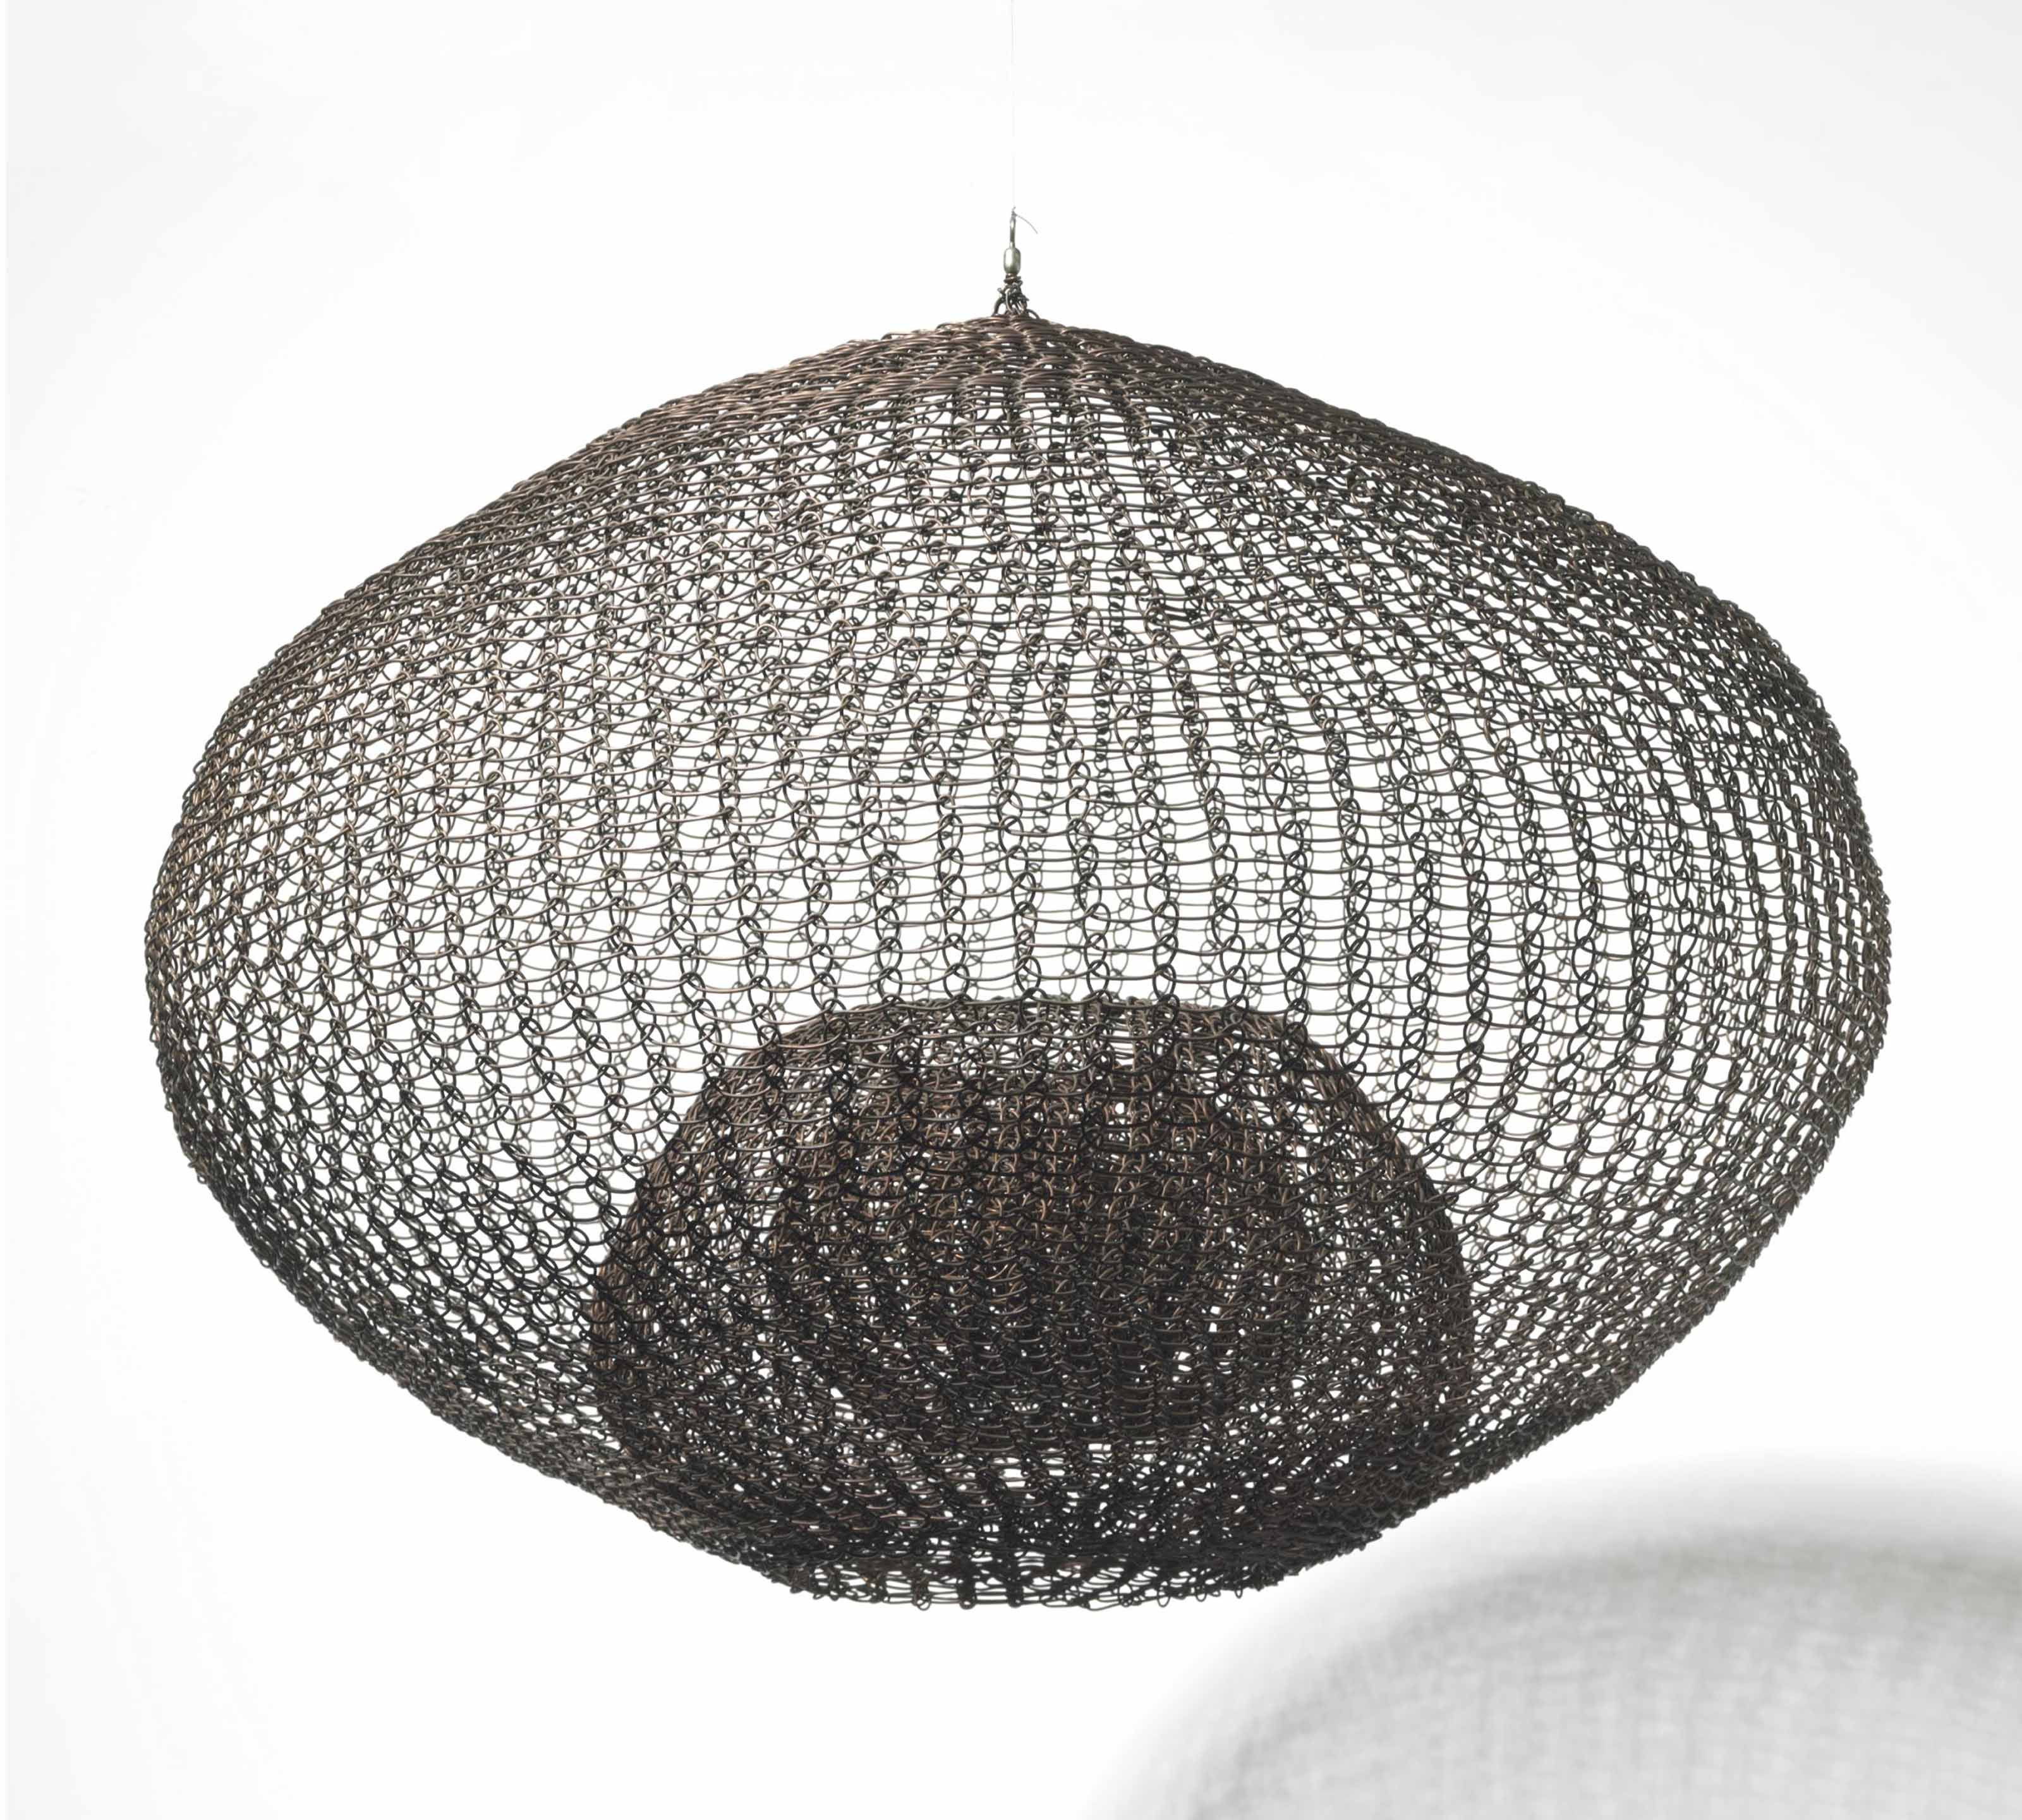 Untitled (S.082 Hanging Single Sphere, Five-Layer Continuous Form within a Form)